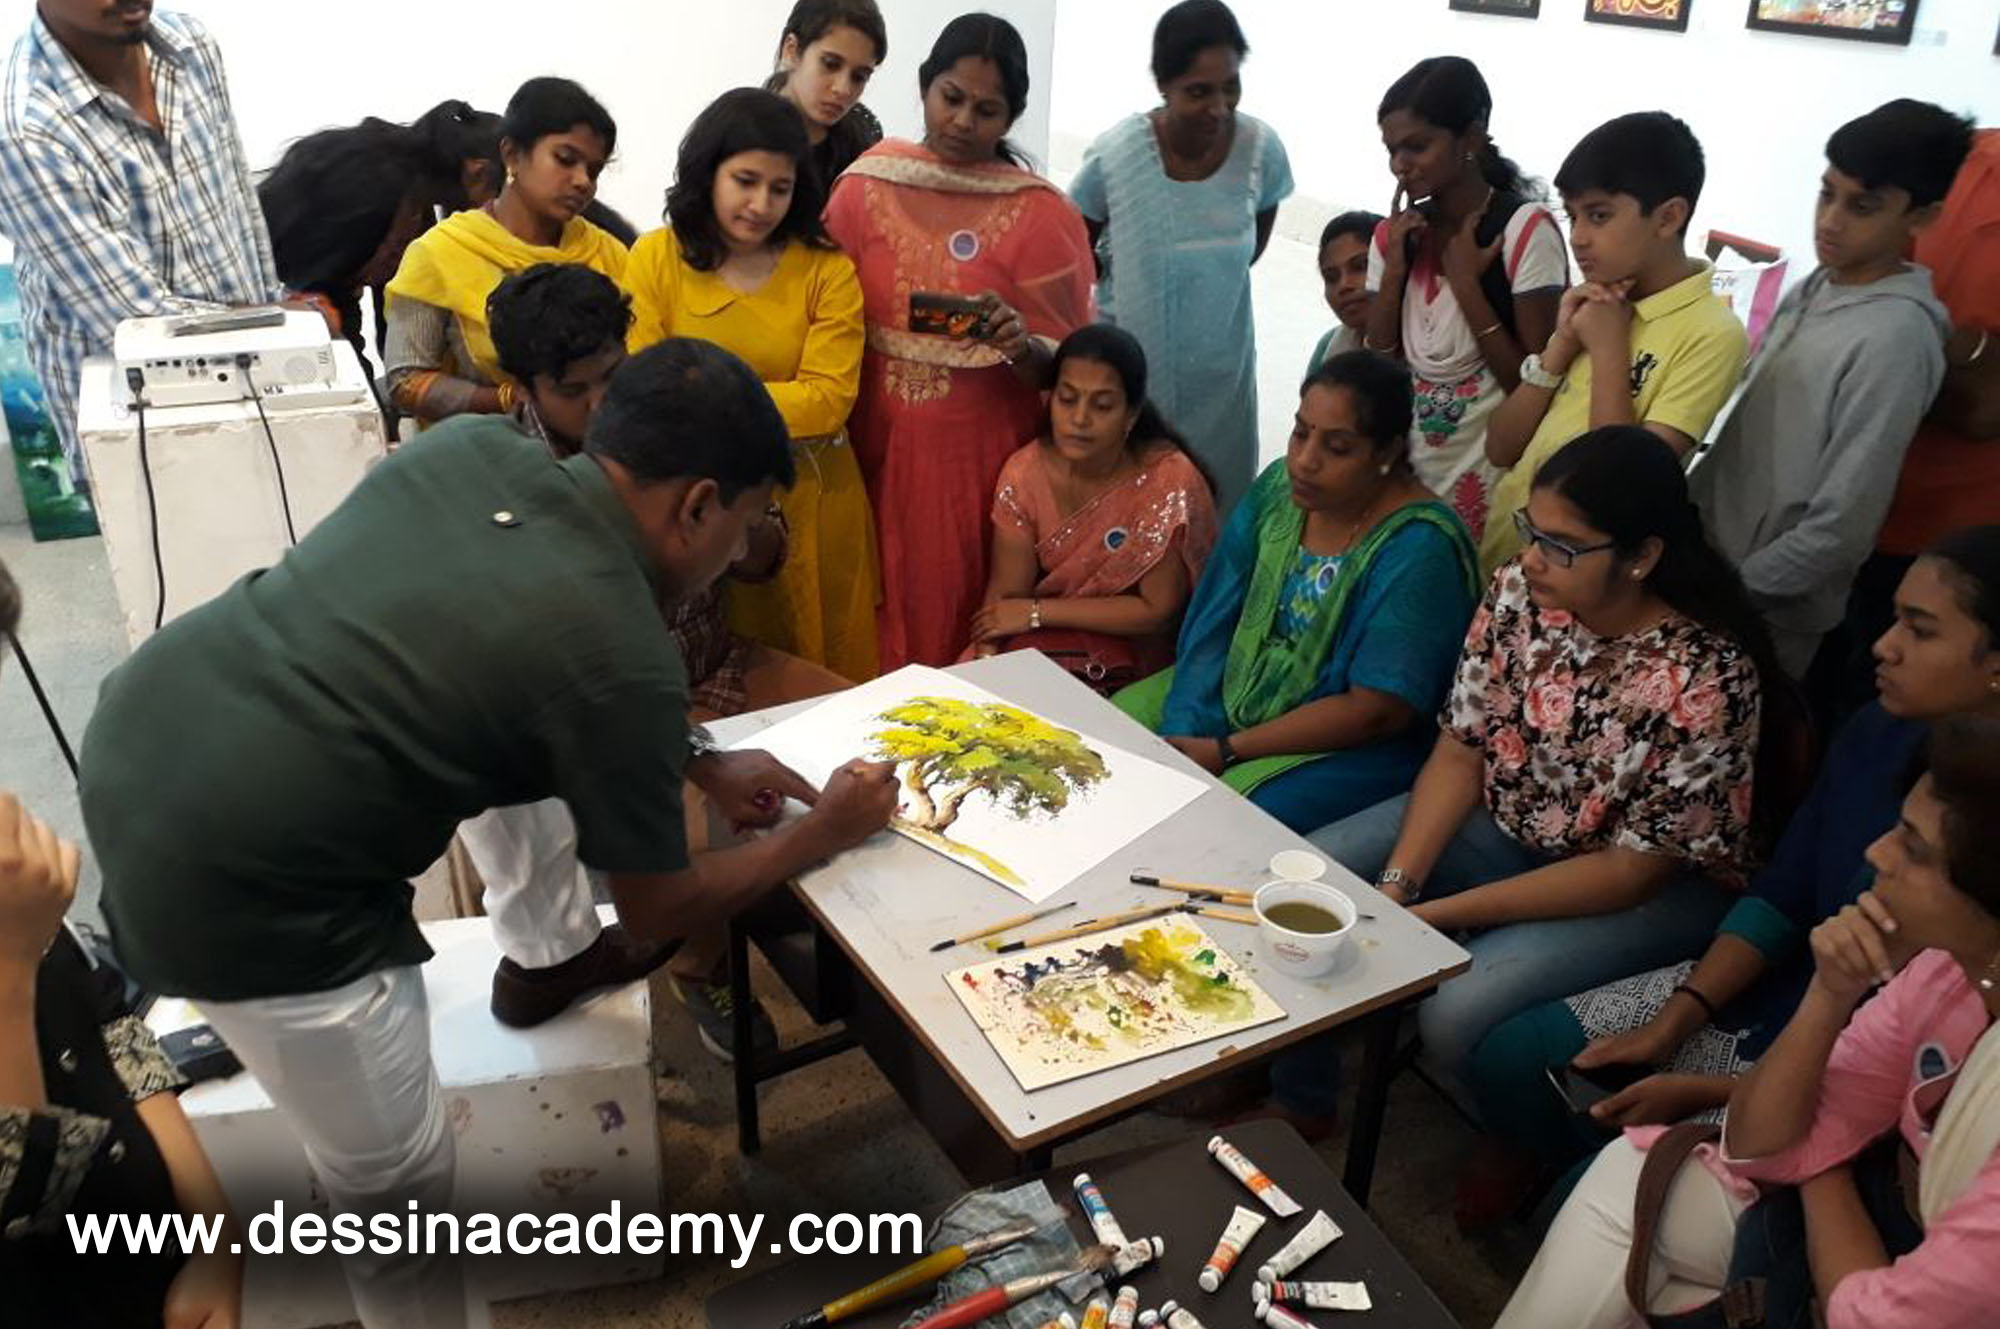 Dessin School of arts Event Gallery 6, part time fine arts courses Coaching in Anna Nagar East L BlockDessin School of Arts